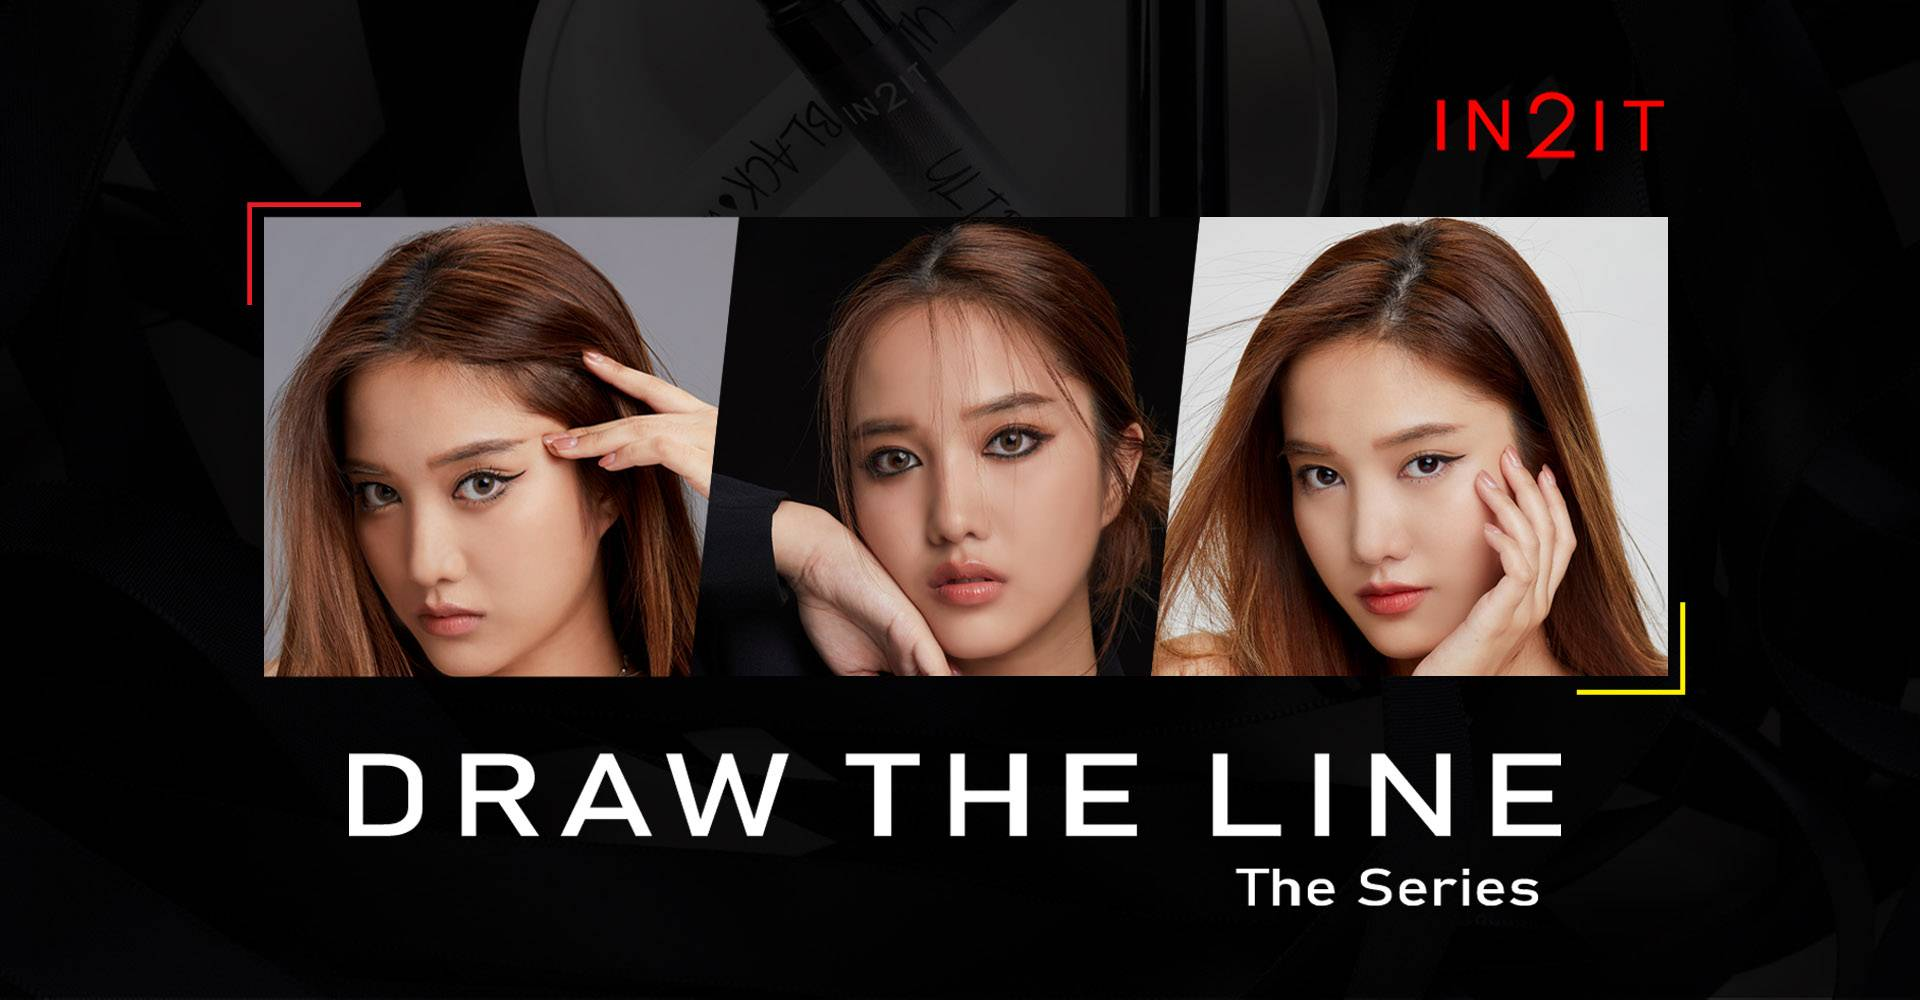 DRAW THE LINE | The Series